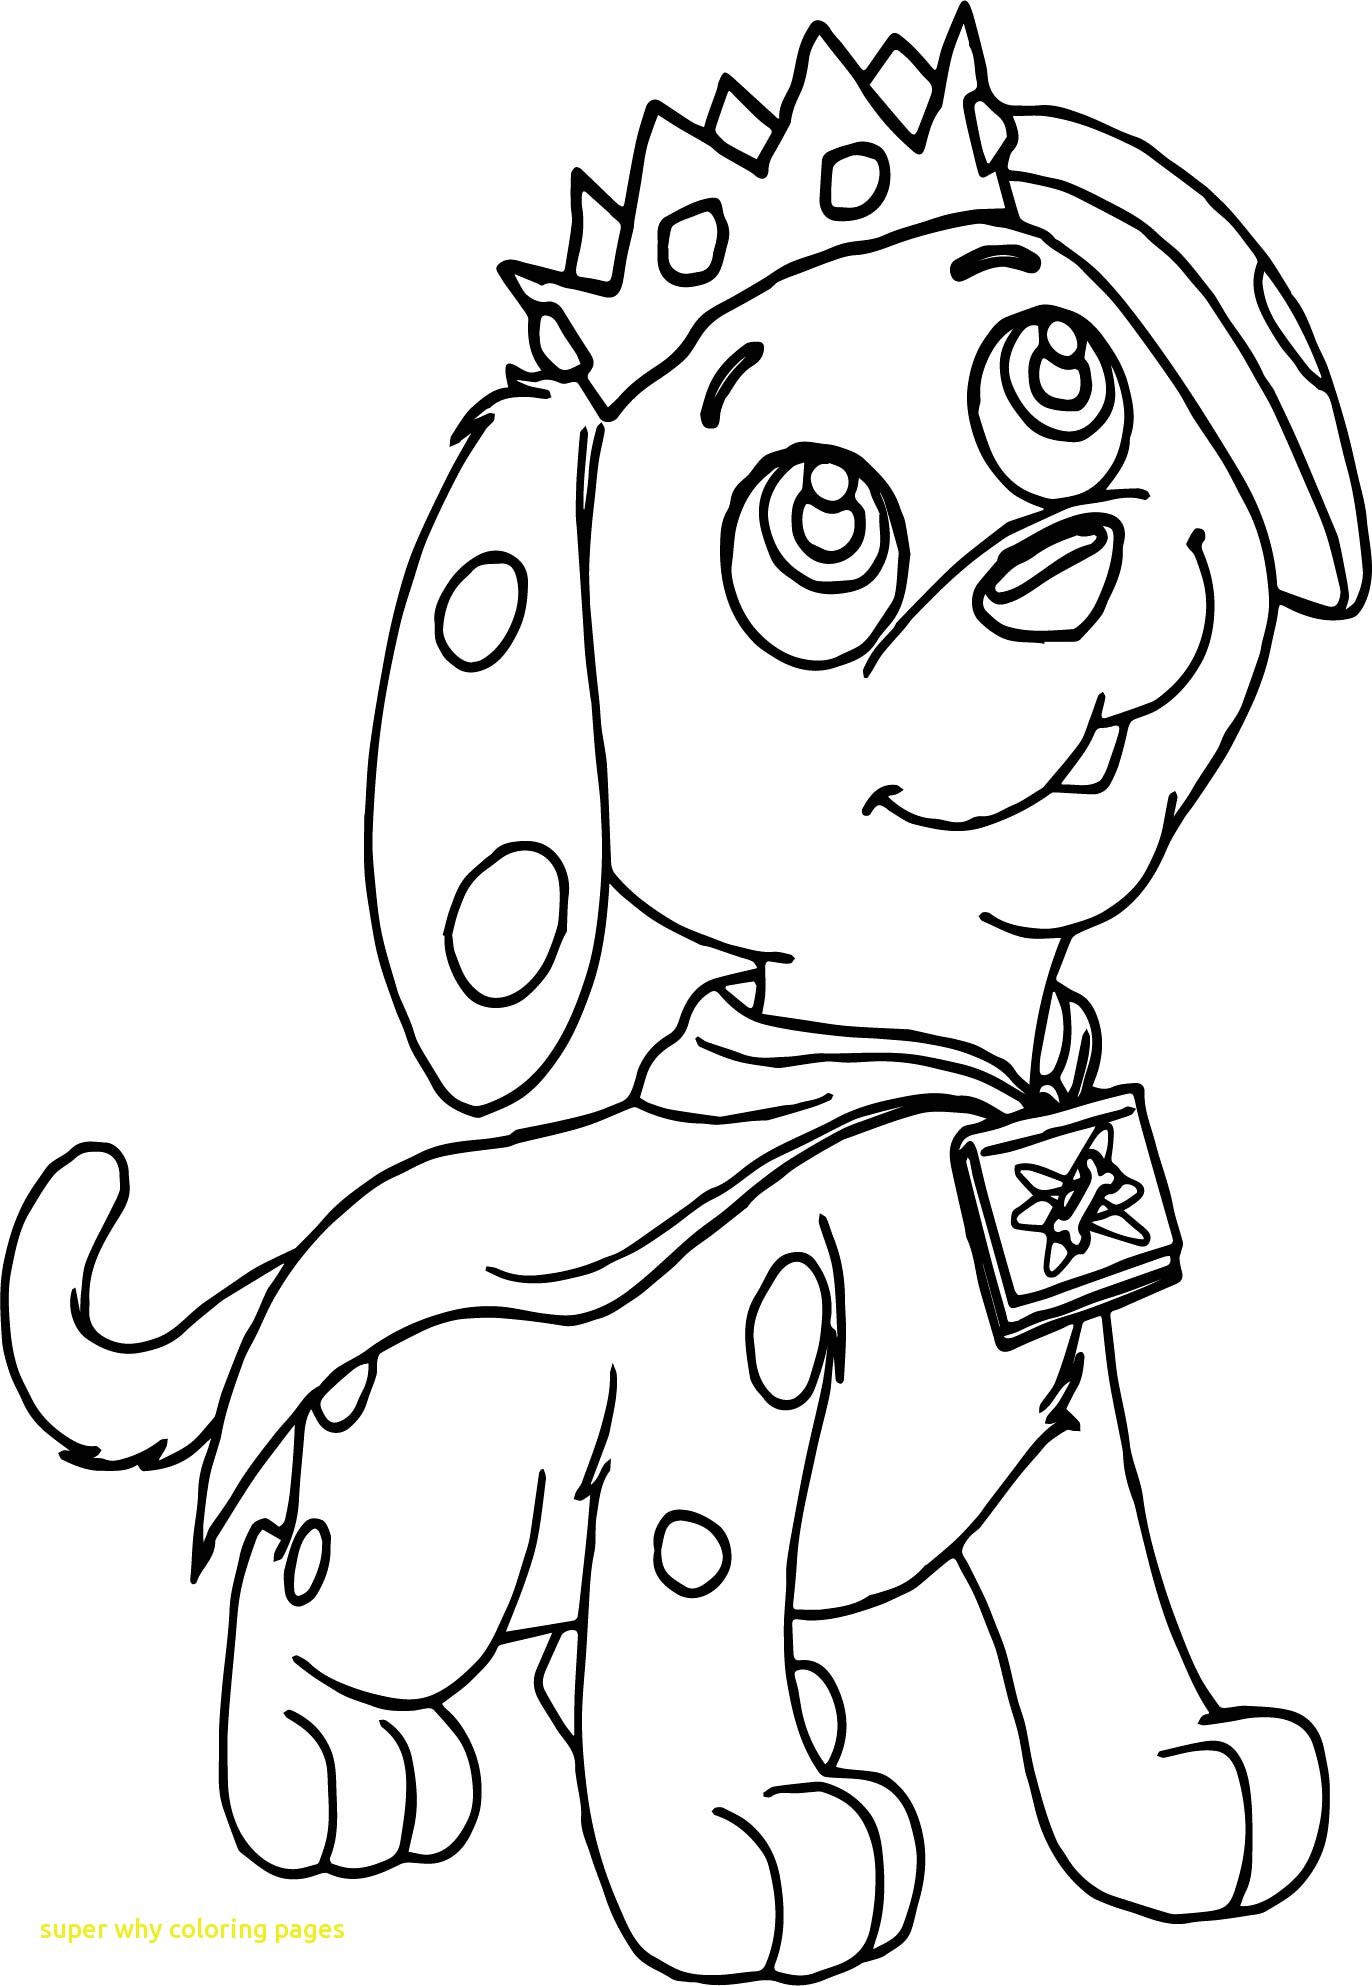 1372x1986 Super Why Coloring Pages With Top For Ribsvigyapan Com Fine